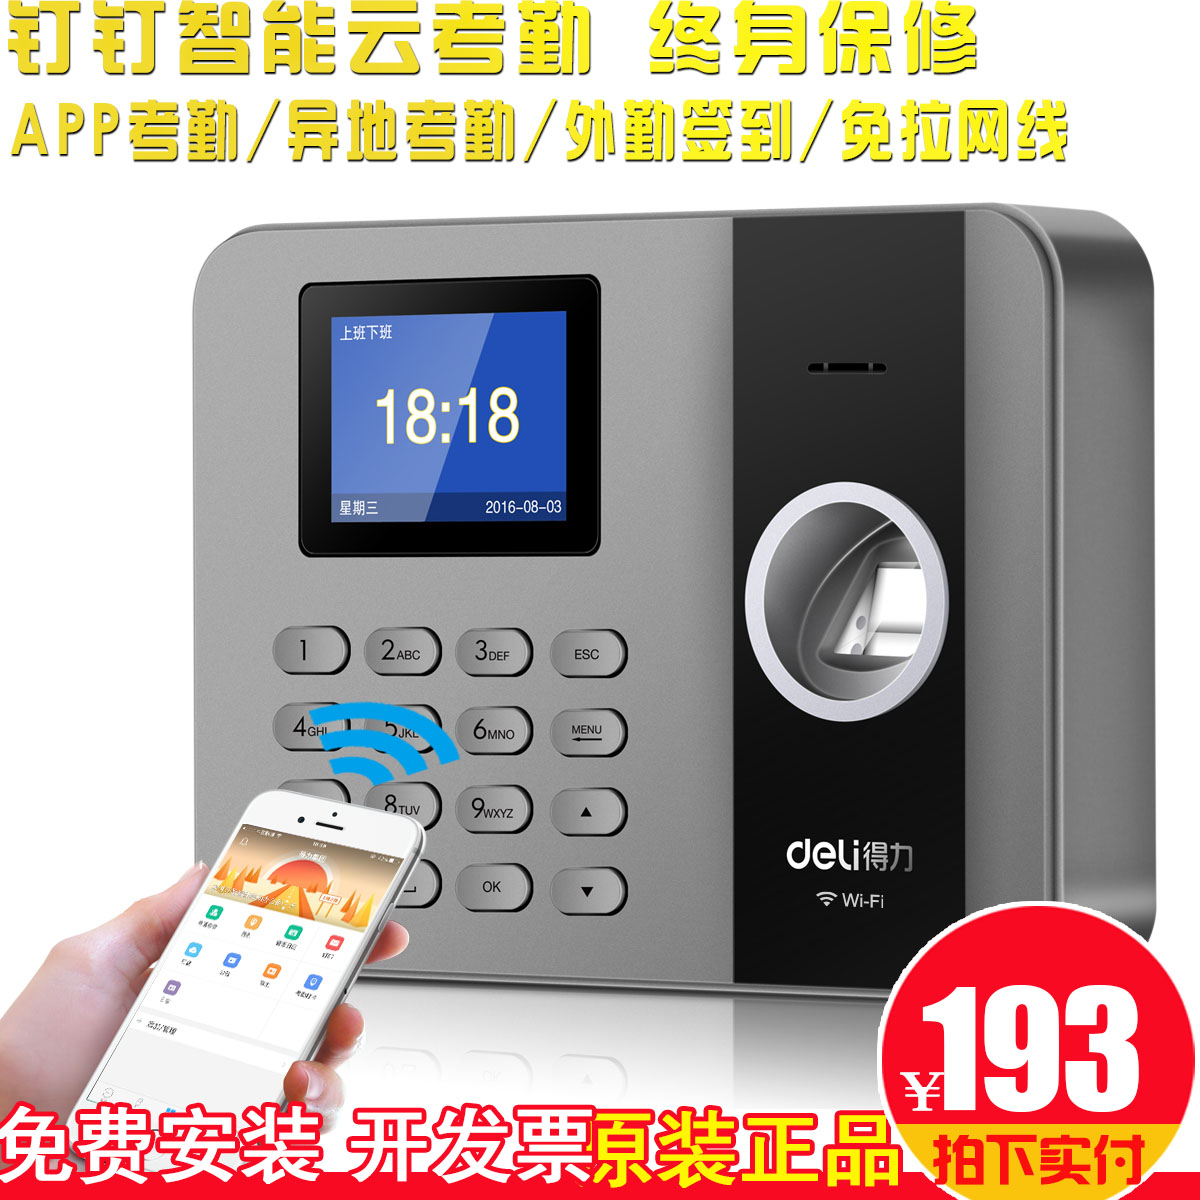 Right nail, intelligent cloud attendance machine, 3761 fingerprint attendance machine, fingerprint machine, card machine, WIFI attendance machine